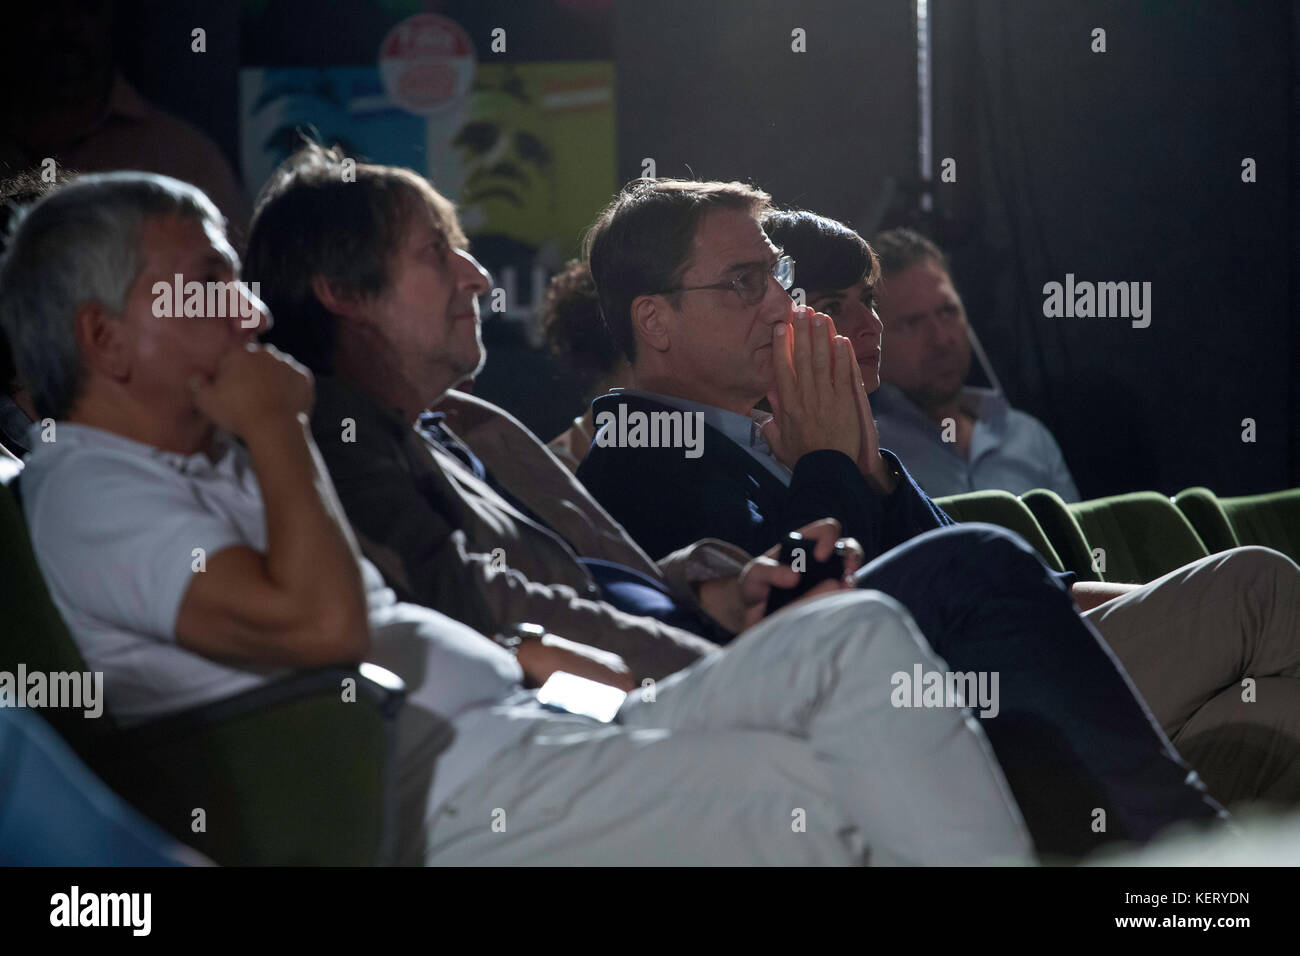 Claudio Fava, candidate for the Presidency of the Sicilian Region, during a Palermitan left assembly. - Stock Image